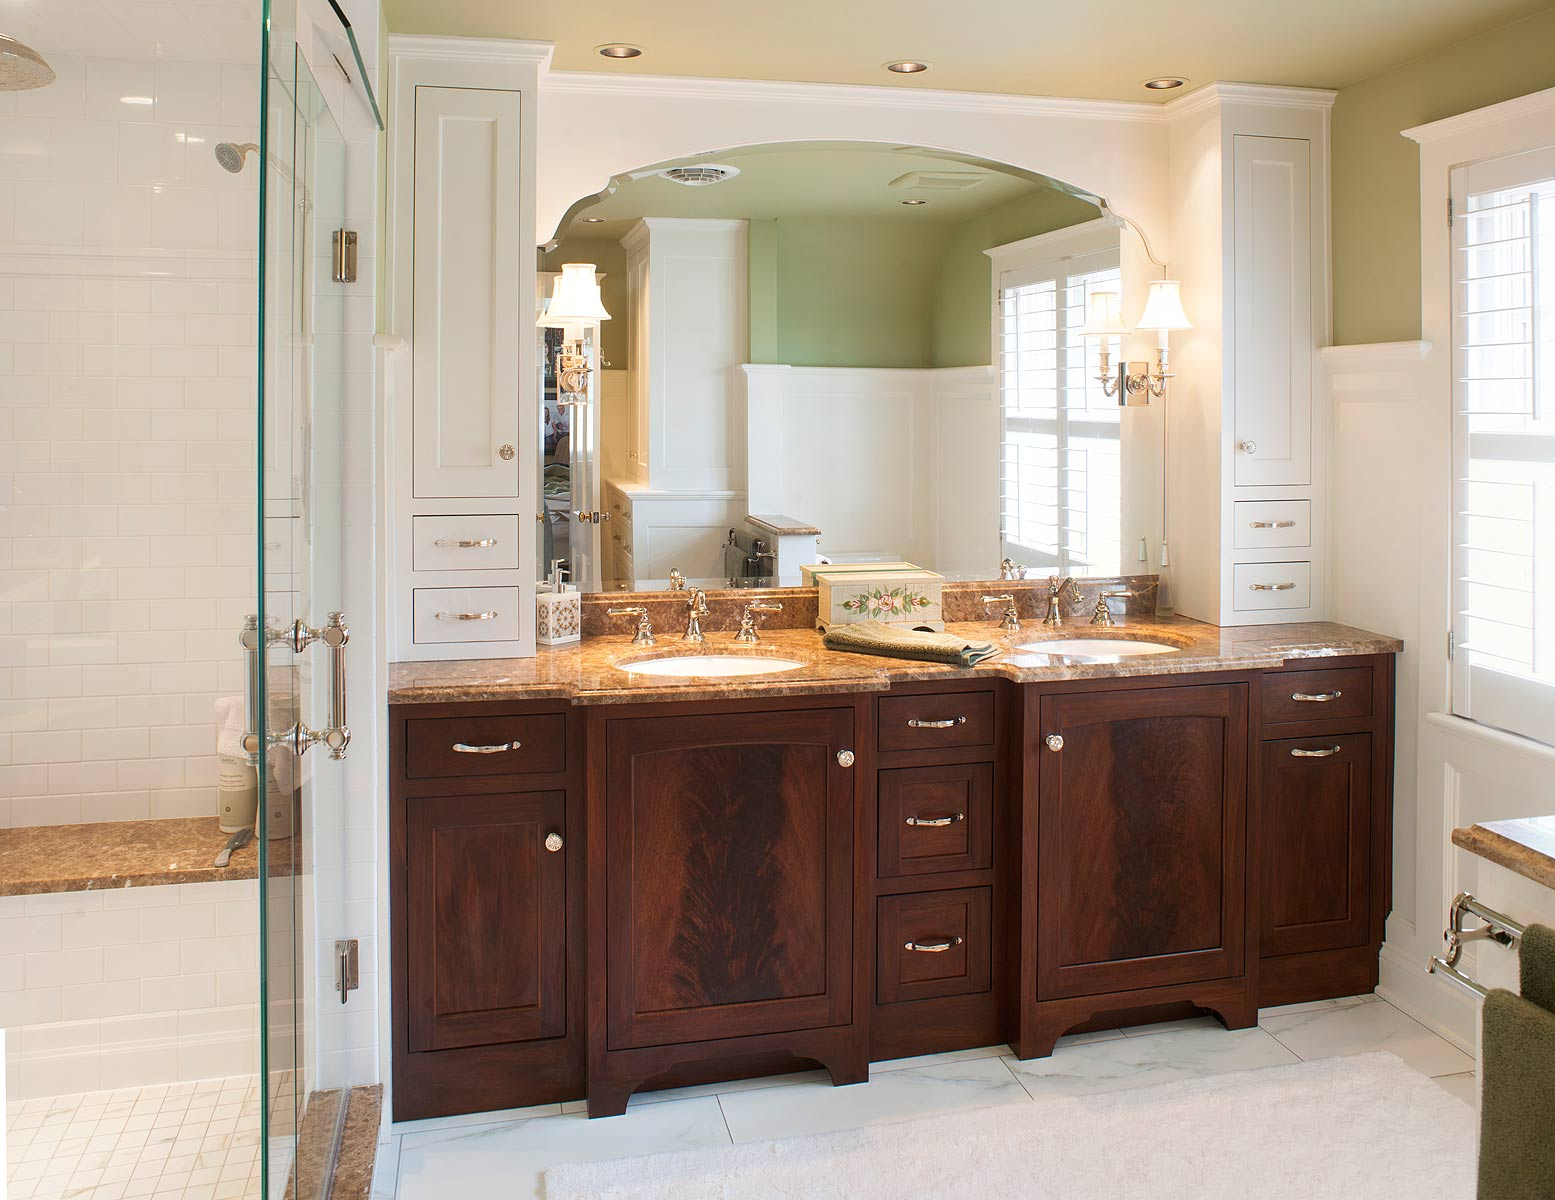 Bathroom Cabinets Minnesota Surface Corian And Inspiration Decorating